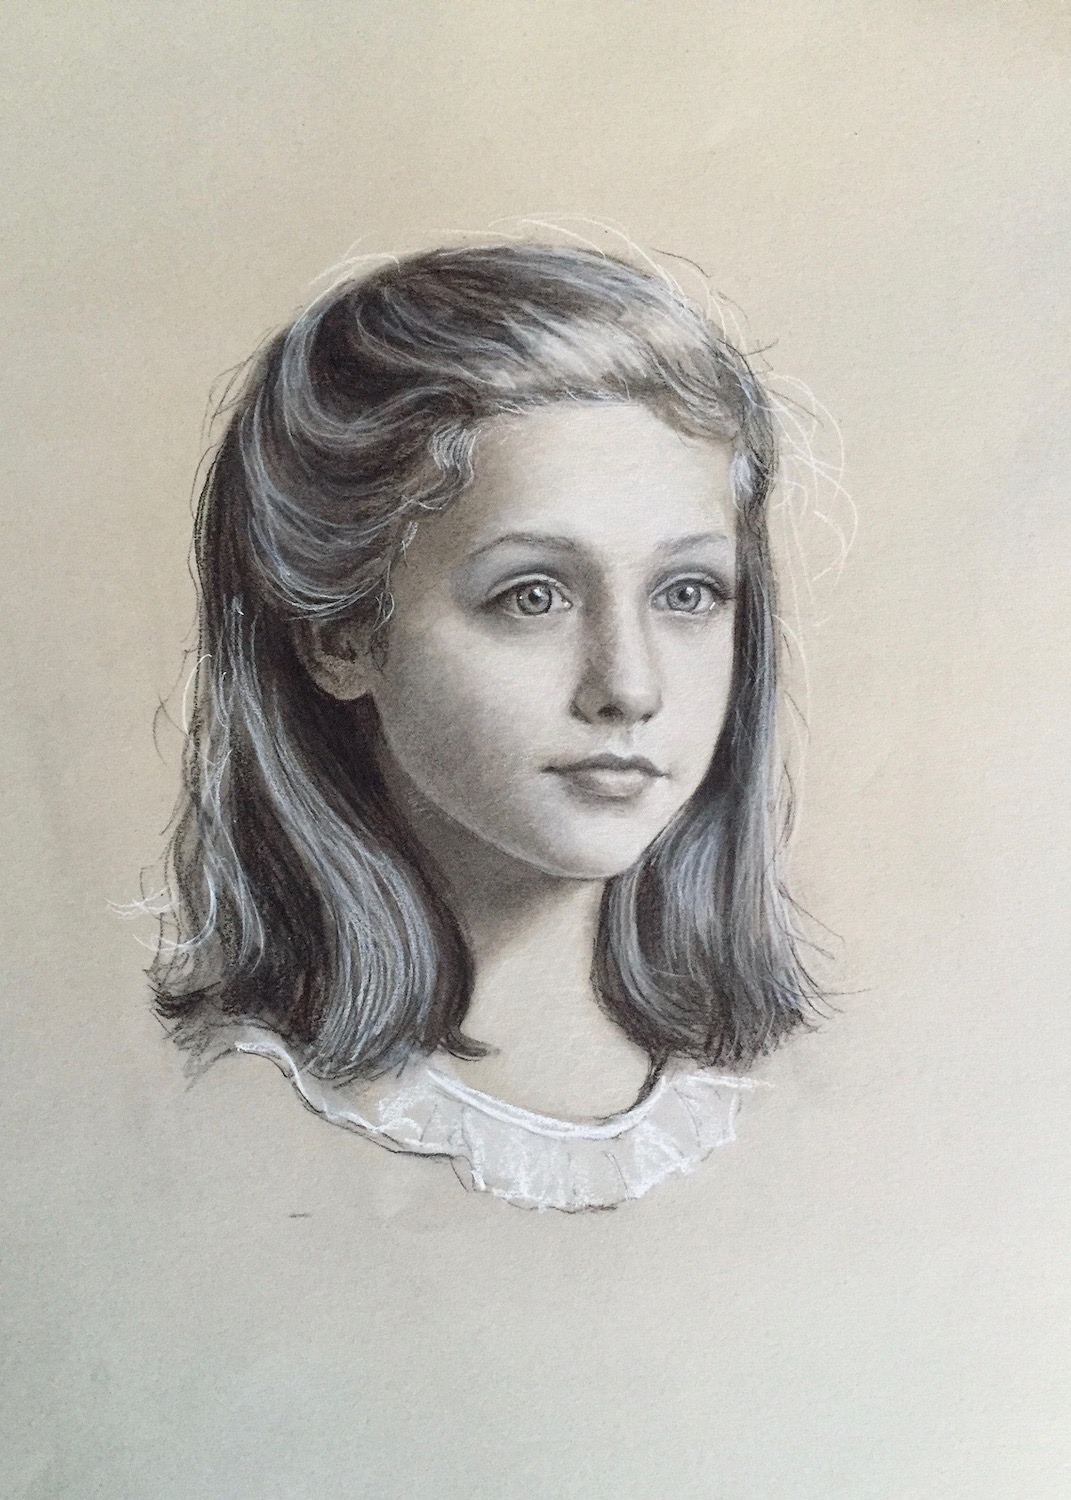 Elizabeth - Charcoal on Canson Paper - 14.5x10.5